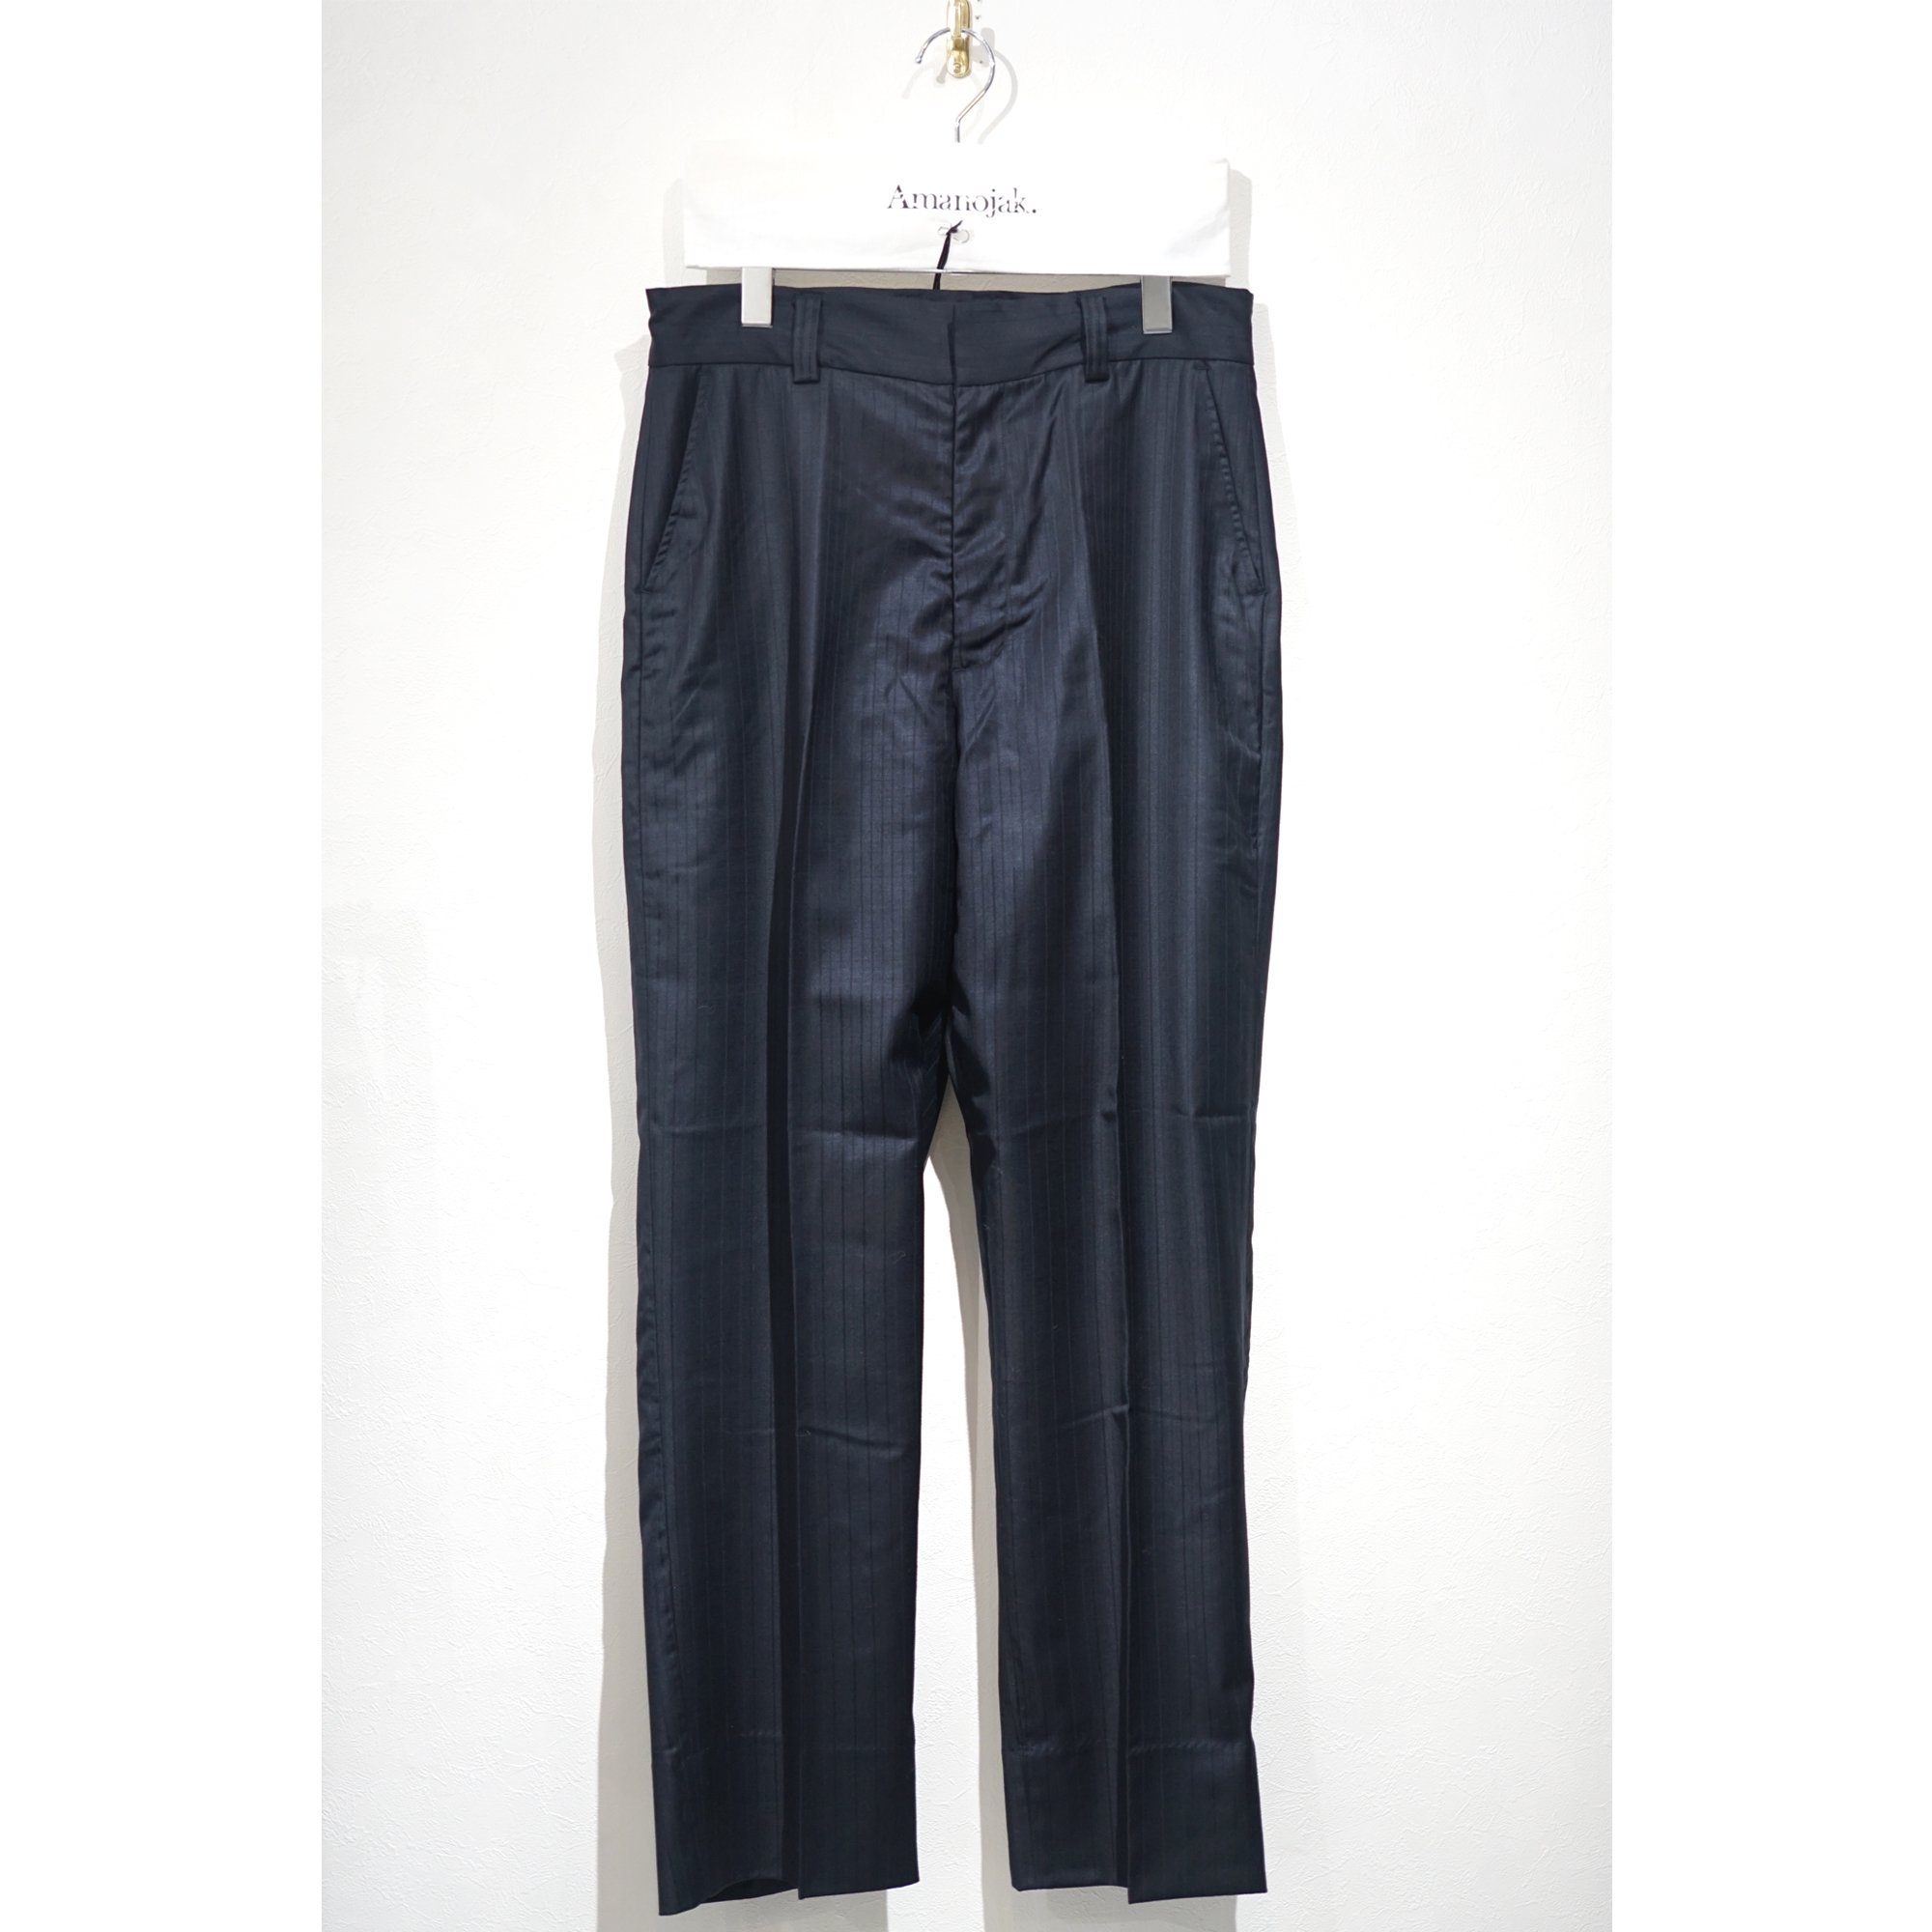 ATHA-WO/SI SHADOW STRIPE EASY TROUSERS